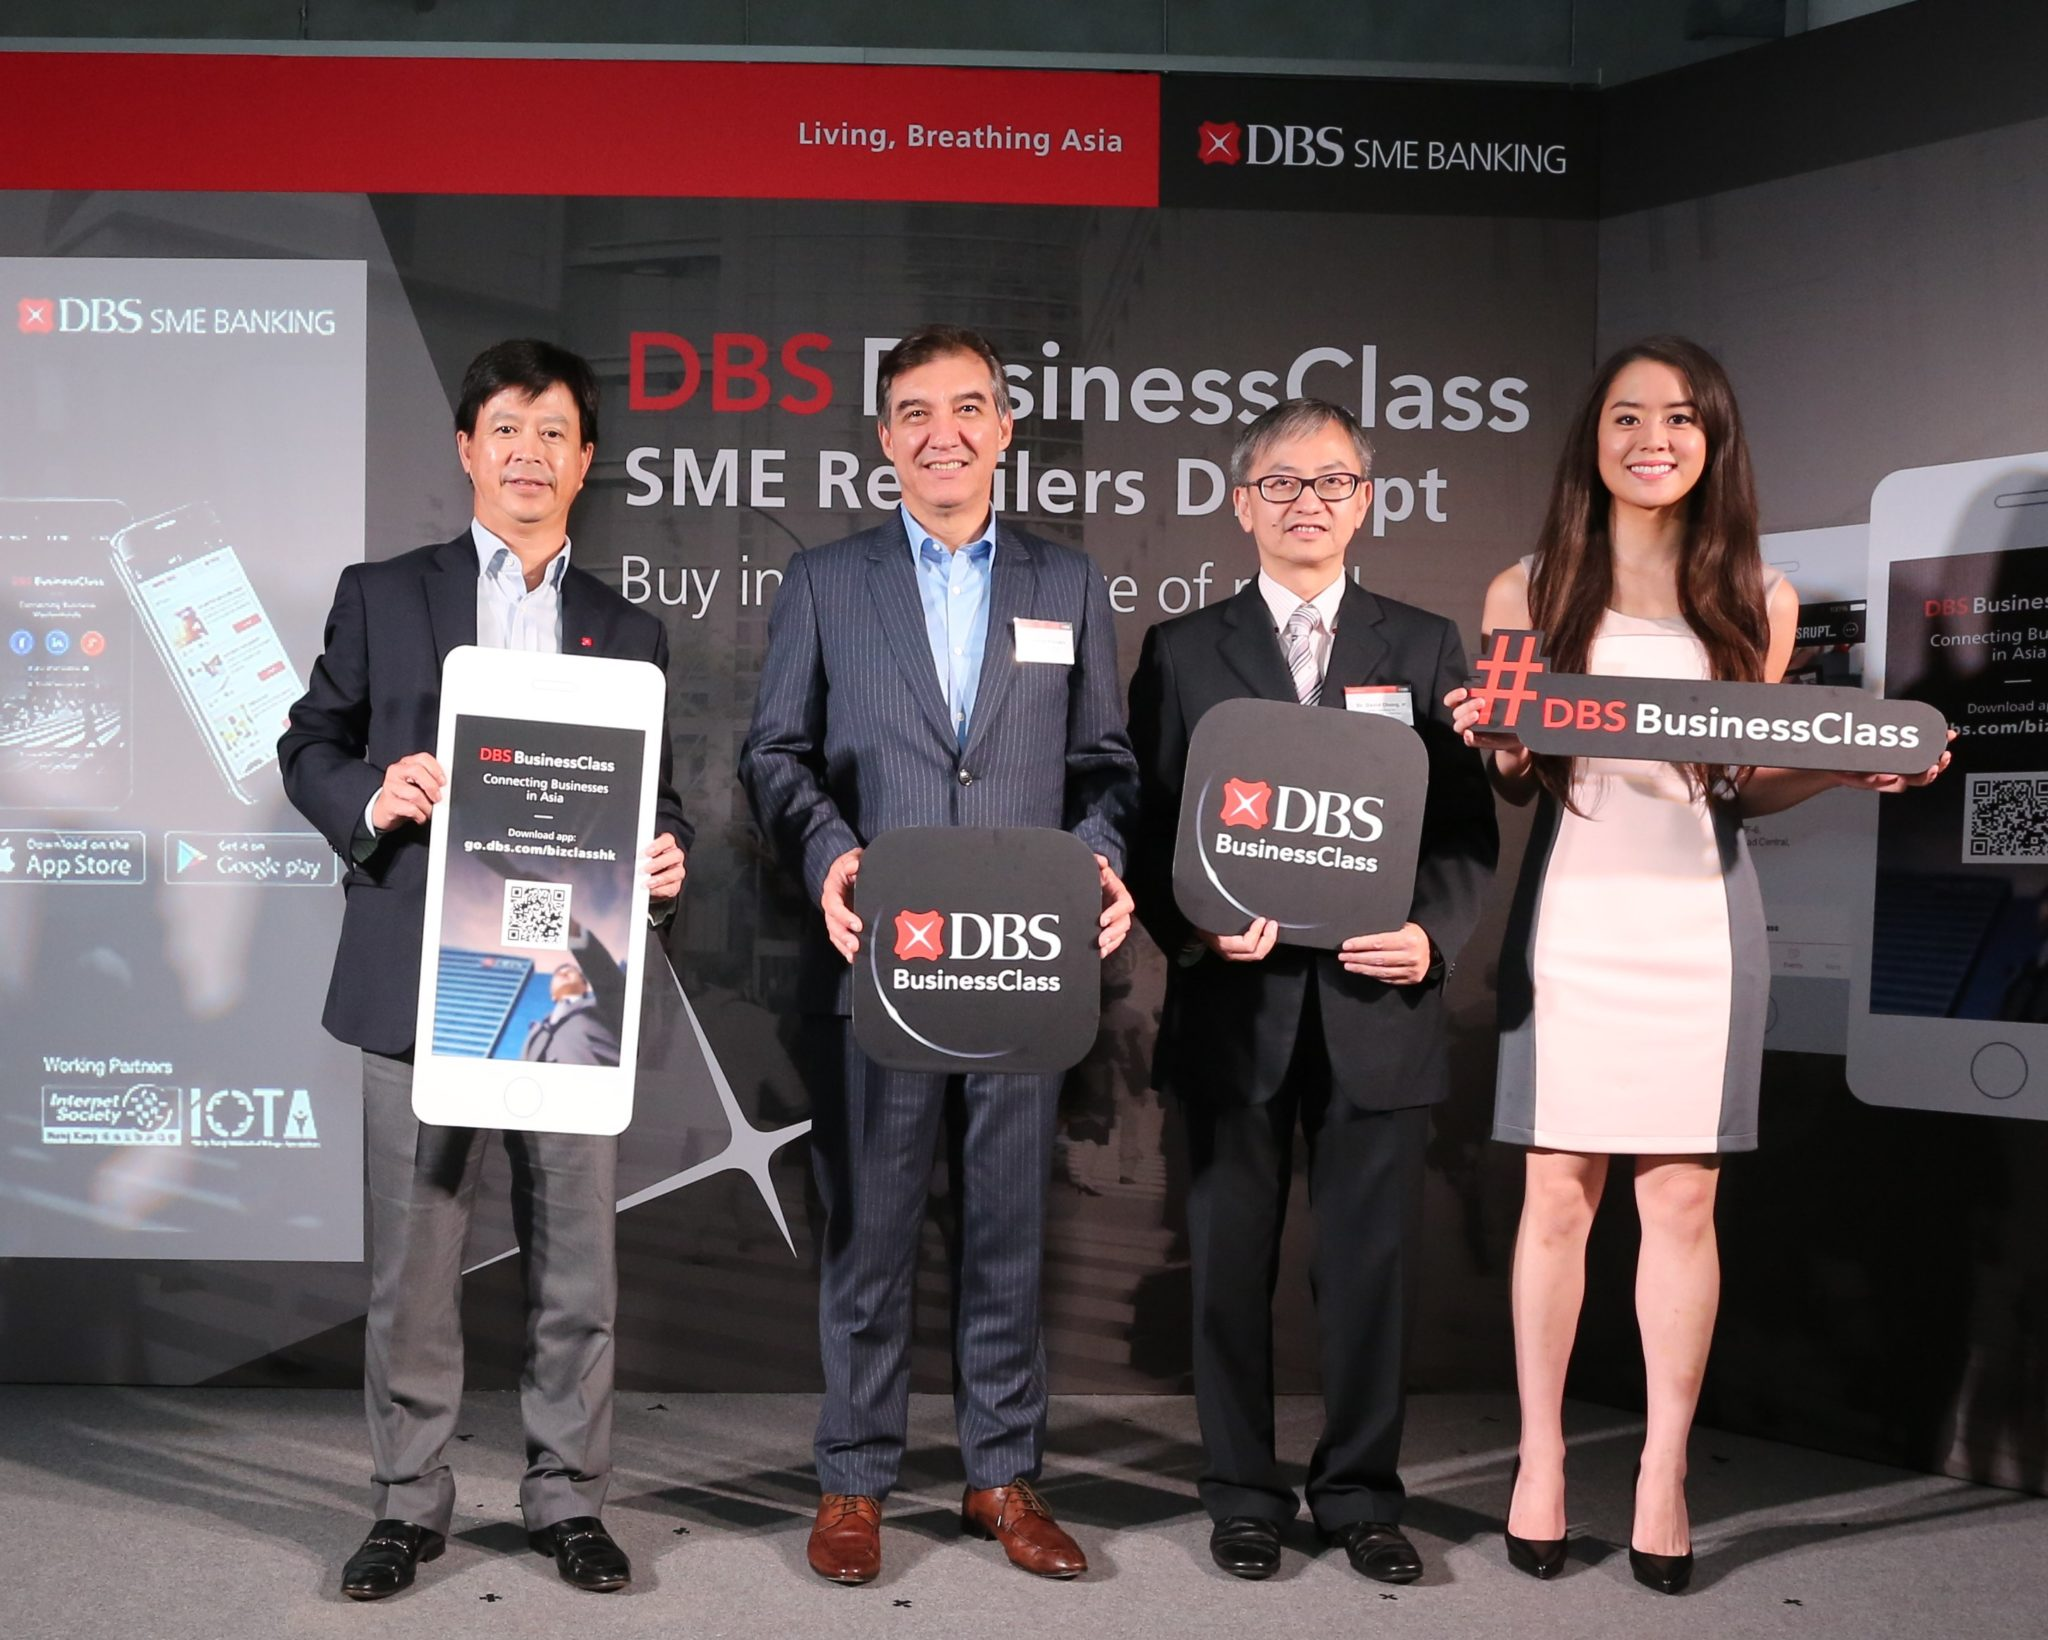 (Left to right) Officiating at the DBS BusinessClass launch in Hong Kong today were Alex Cheung, Managing Director, Head of Institutional Banking Group, Hong Kong, DBS Bank (Hong Kong) Limited, Sebastian Paredes, Chief Executive Officer of DBS Bank (Hong Kong) Limited, the Under Secretary for Innovation and Technology, Dr David Chung, JP, and Ernestine Fu, a Silicon Valley venture capitalist.